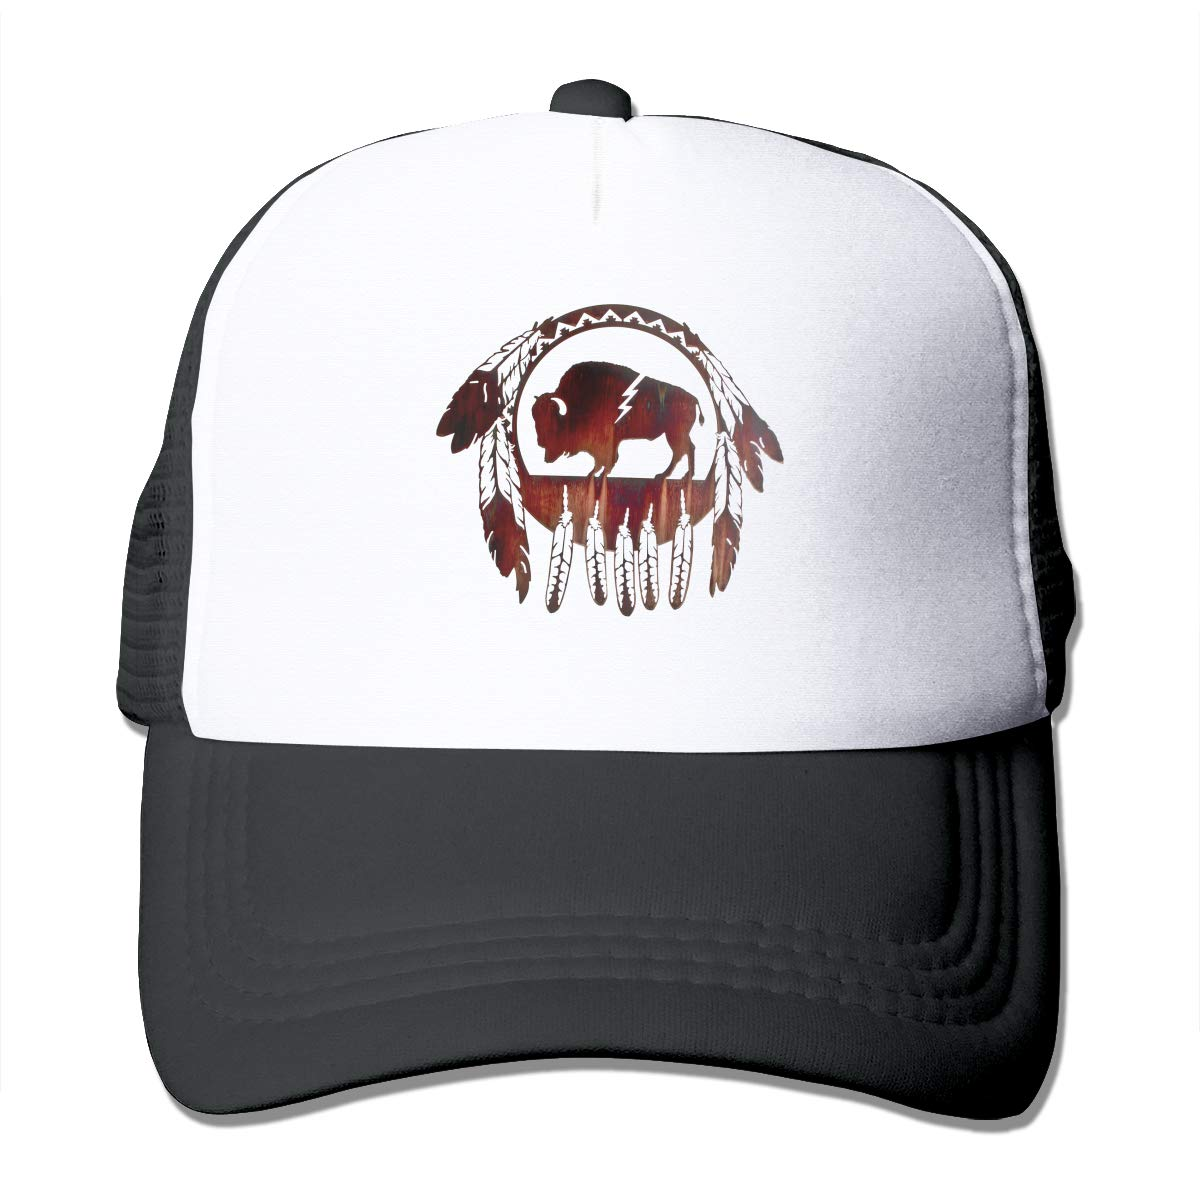 Louis Berry Bison Buffalo Native American - Gorra Unisex para ...